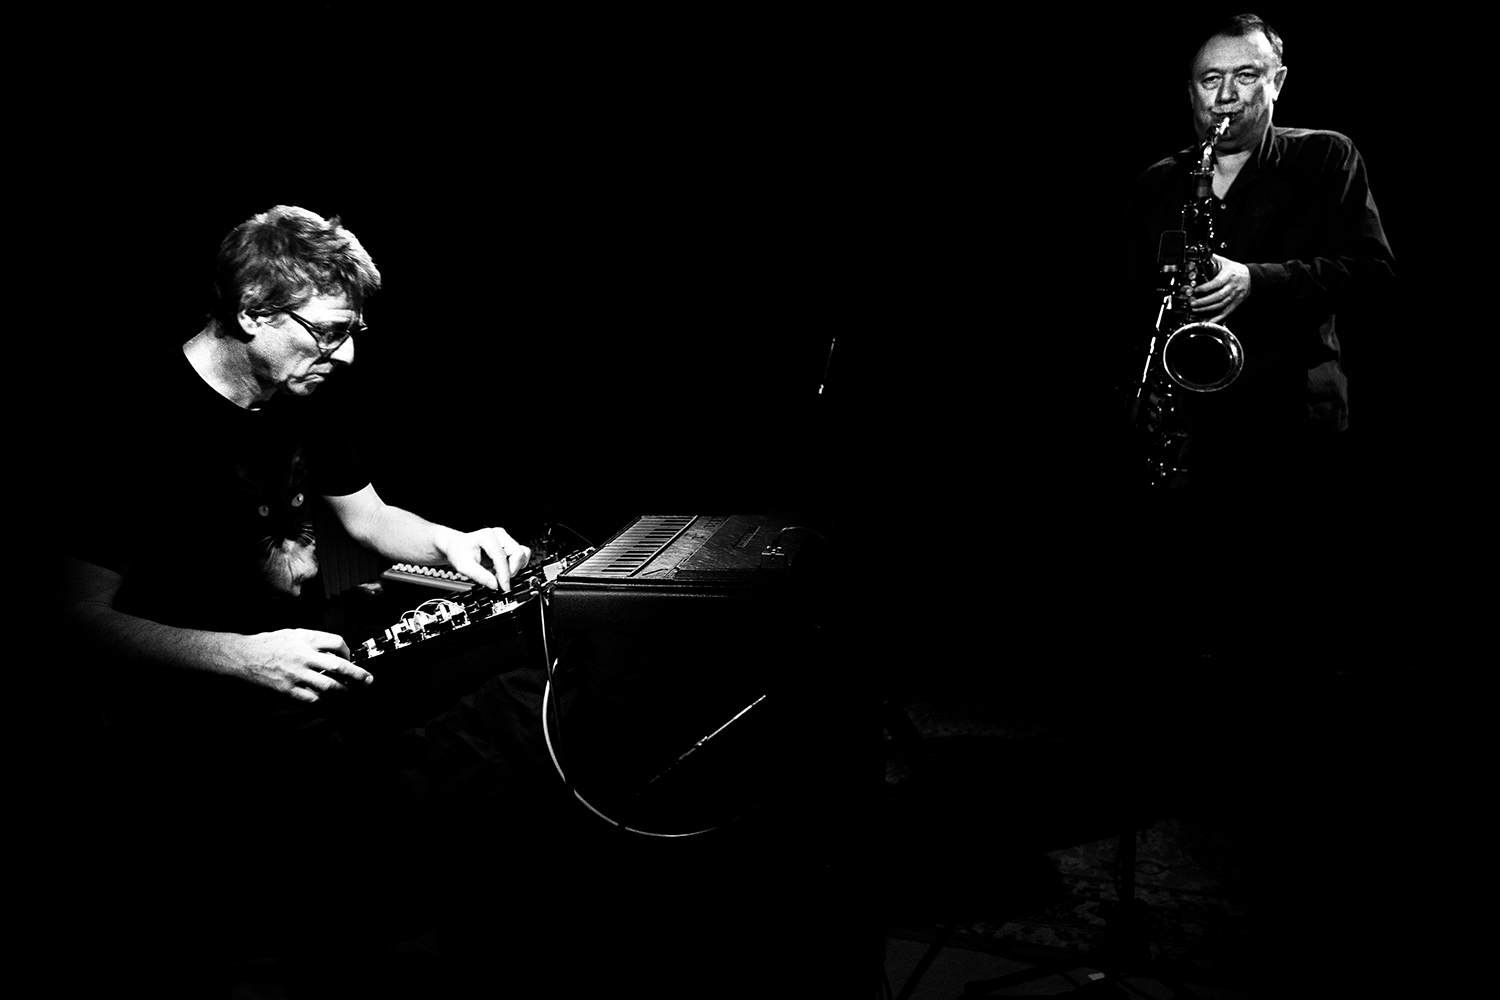 Thomas Lehn & John Butcher by Laurent Orseau - Oorstof | Sound In Motion - AB Salon - Brussels, Belgium #2